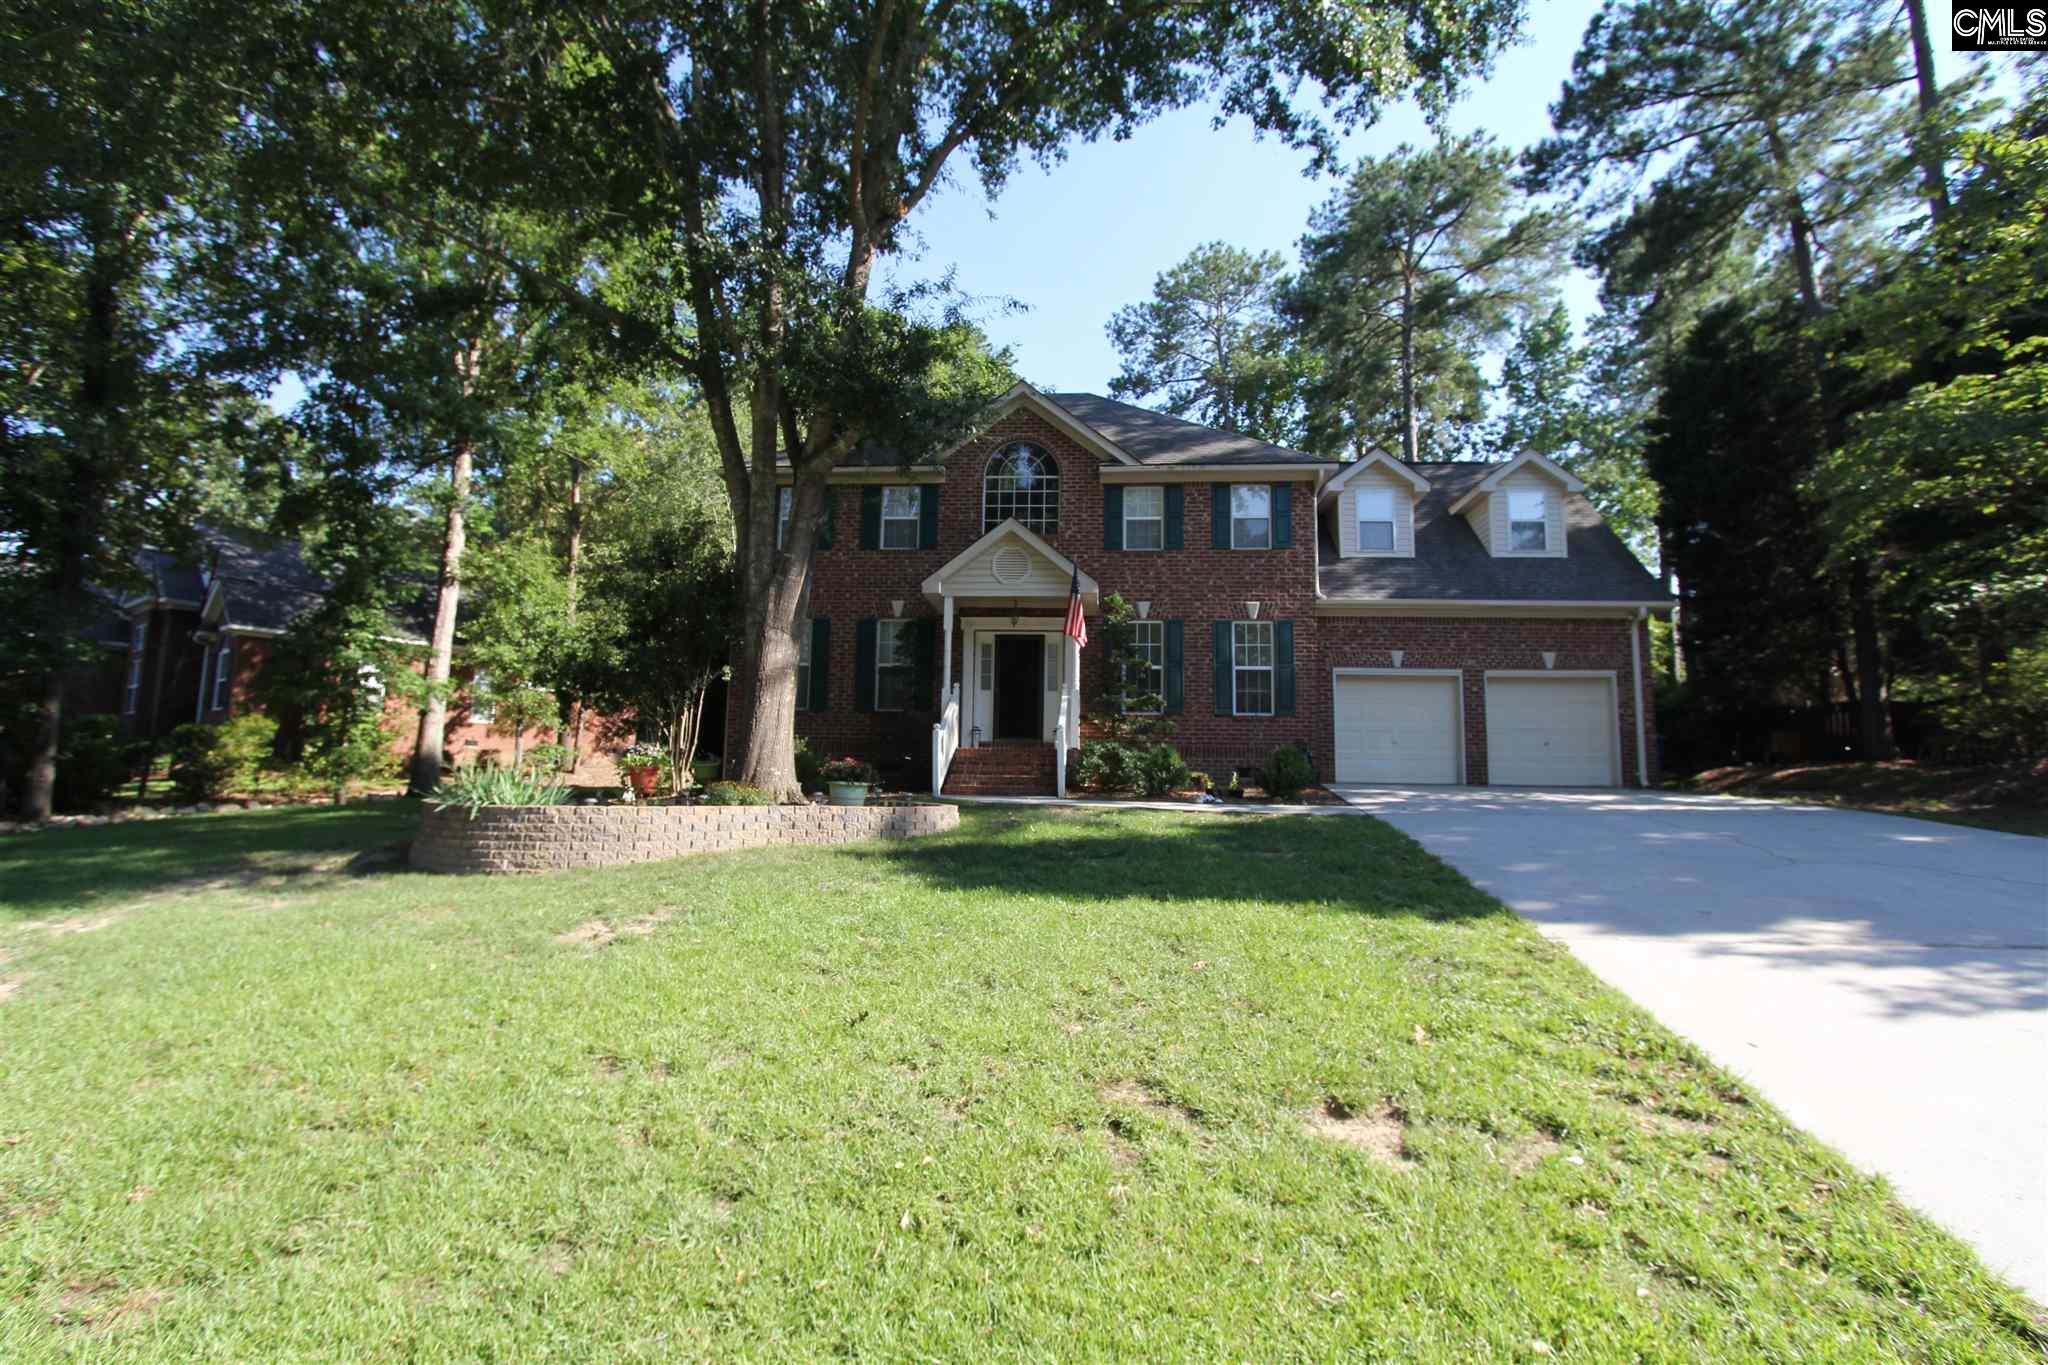 305 Carola Ln Lexington, SC 29072